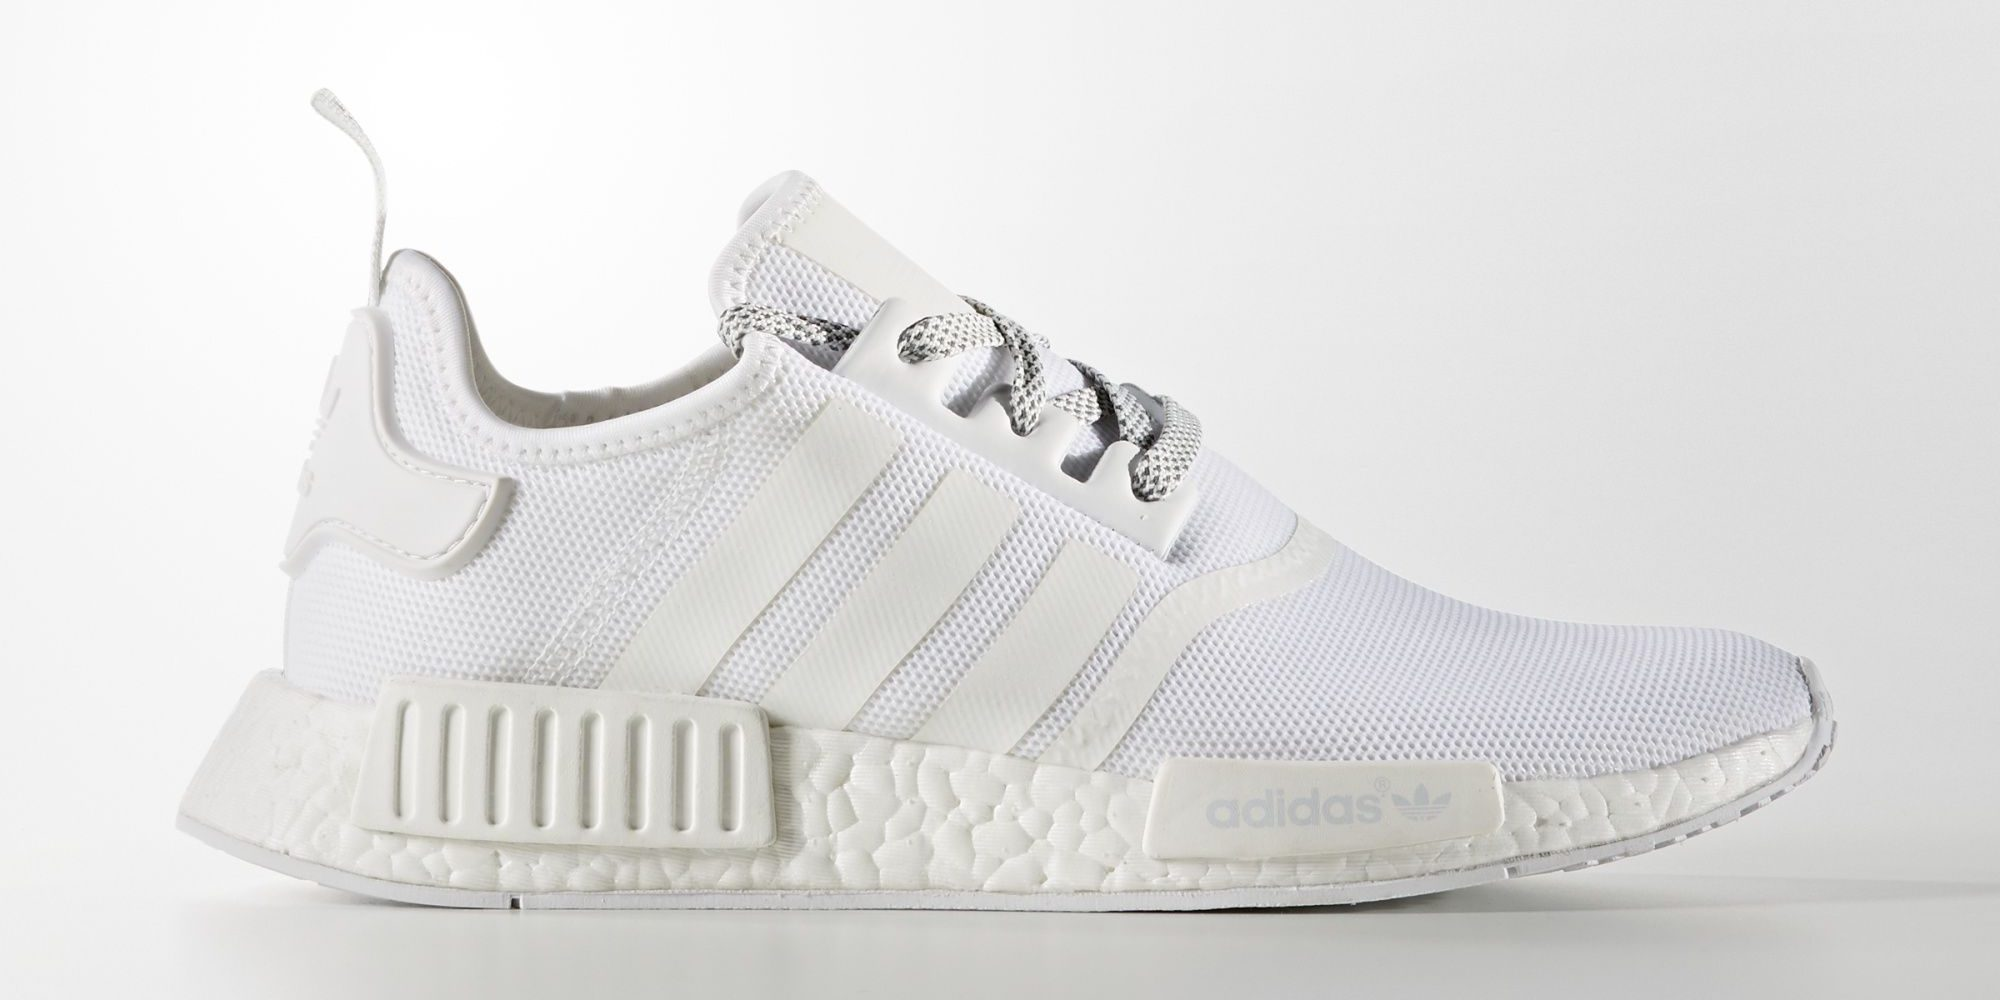 The adidas NMD R1 Runner is Available in Multiple Colorways